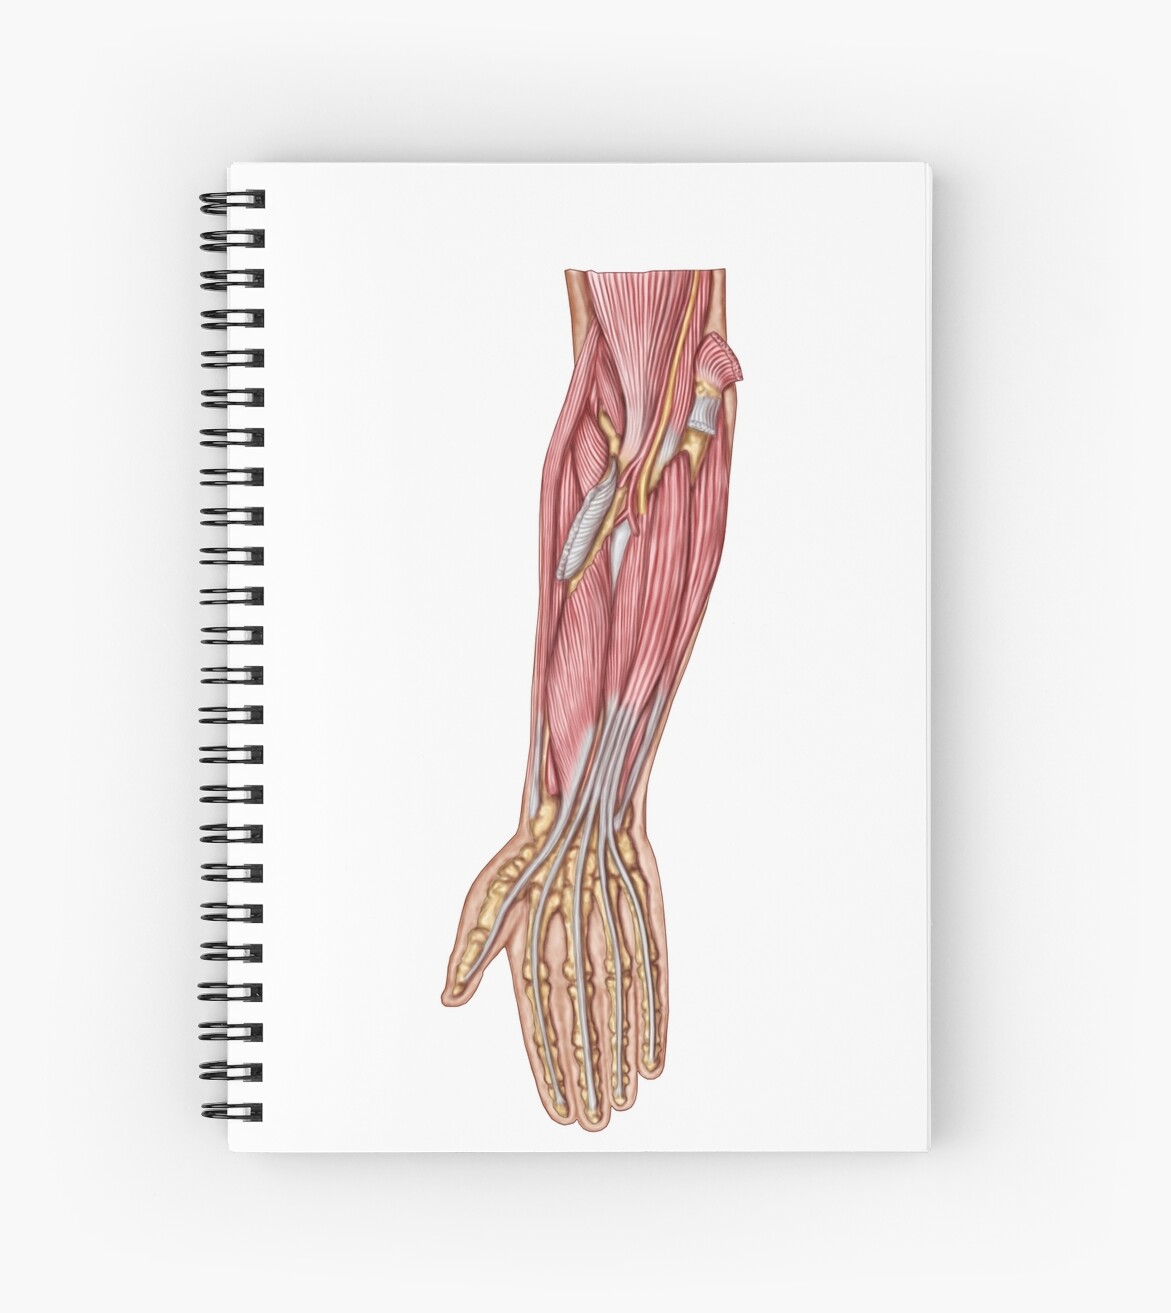 Anatomy Of Human Forearm Muscles Deep Anterior View Spiral